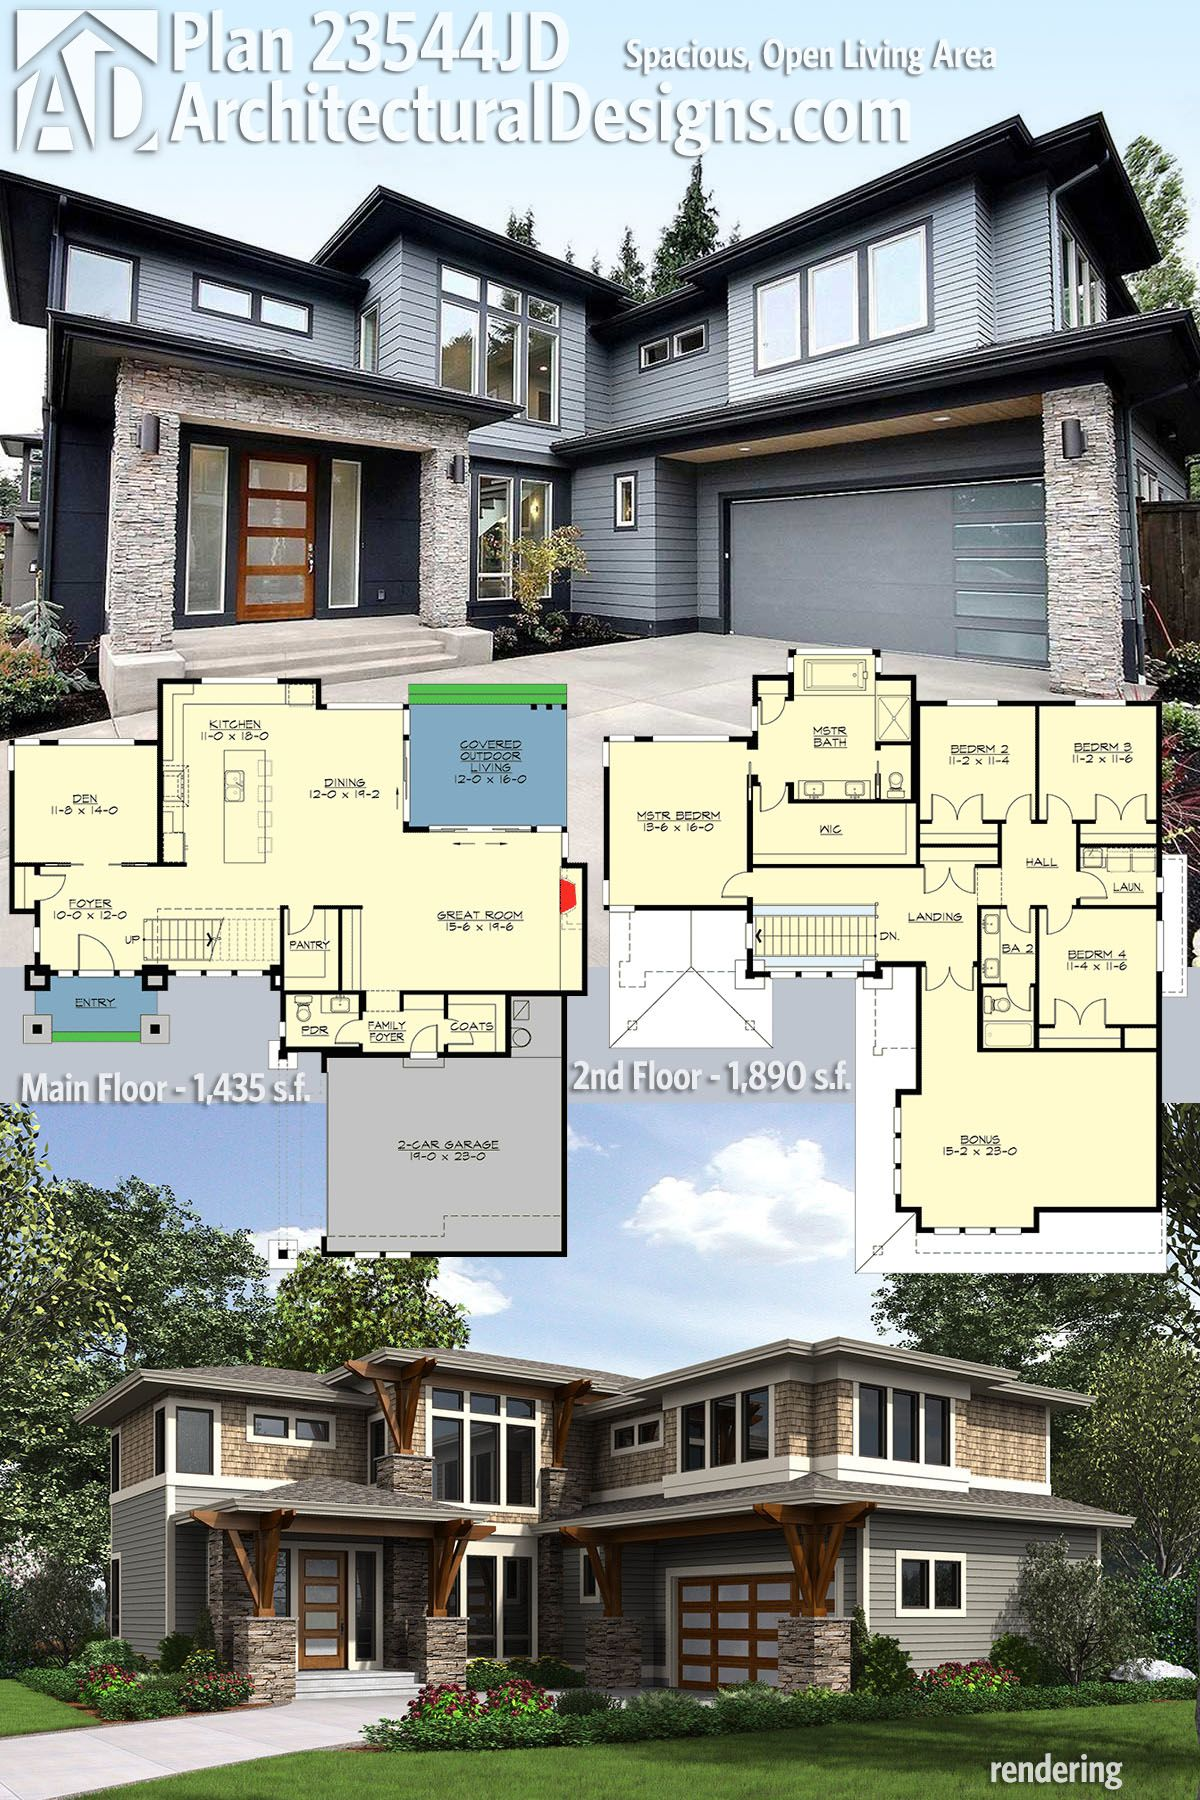 Architectural designs modern house plan jd comes to life the home gives you beds baths and over square feet of heated living space also rh ar pinterest